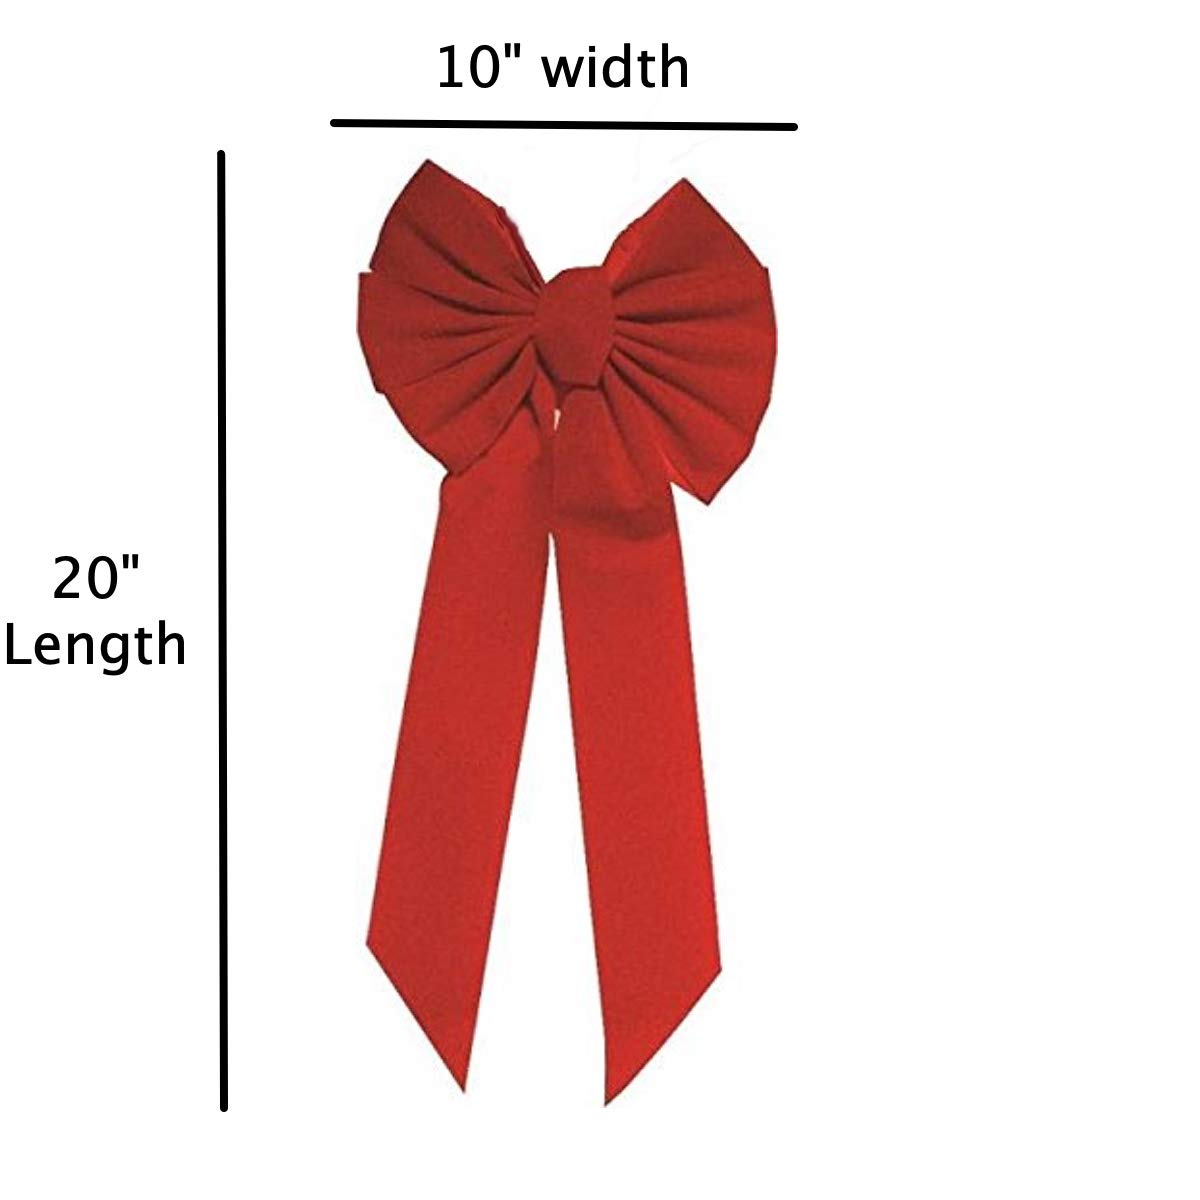 12-Inch 3 Pack Waterproof Velvet Attachment tie Included for Easy Hanging Indoor//Outdoor use Great for Large Gifts Christmas Wreath Bow Rocky Mountain Goods Red Bow Hand Tied in USA